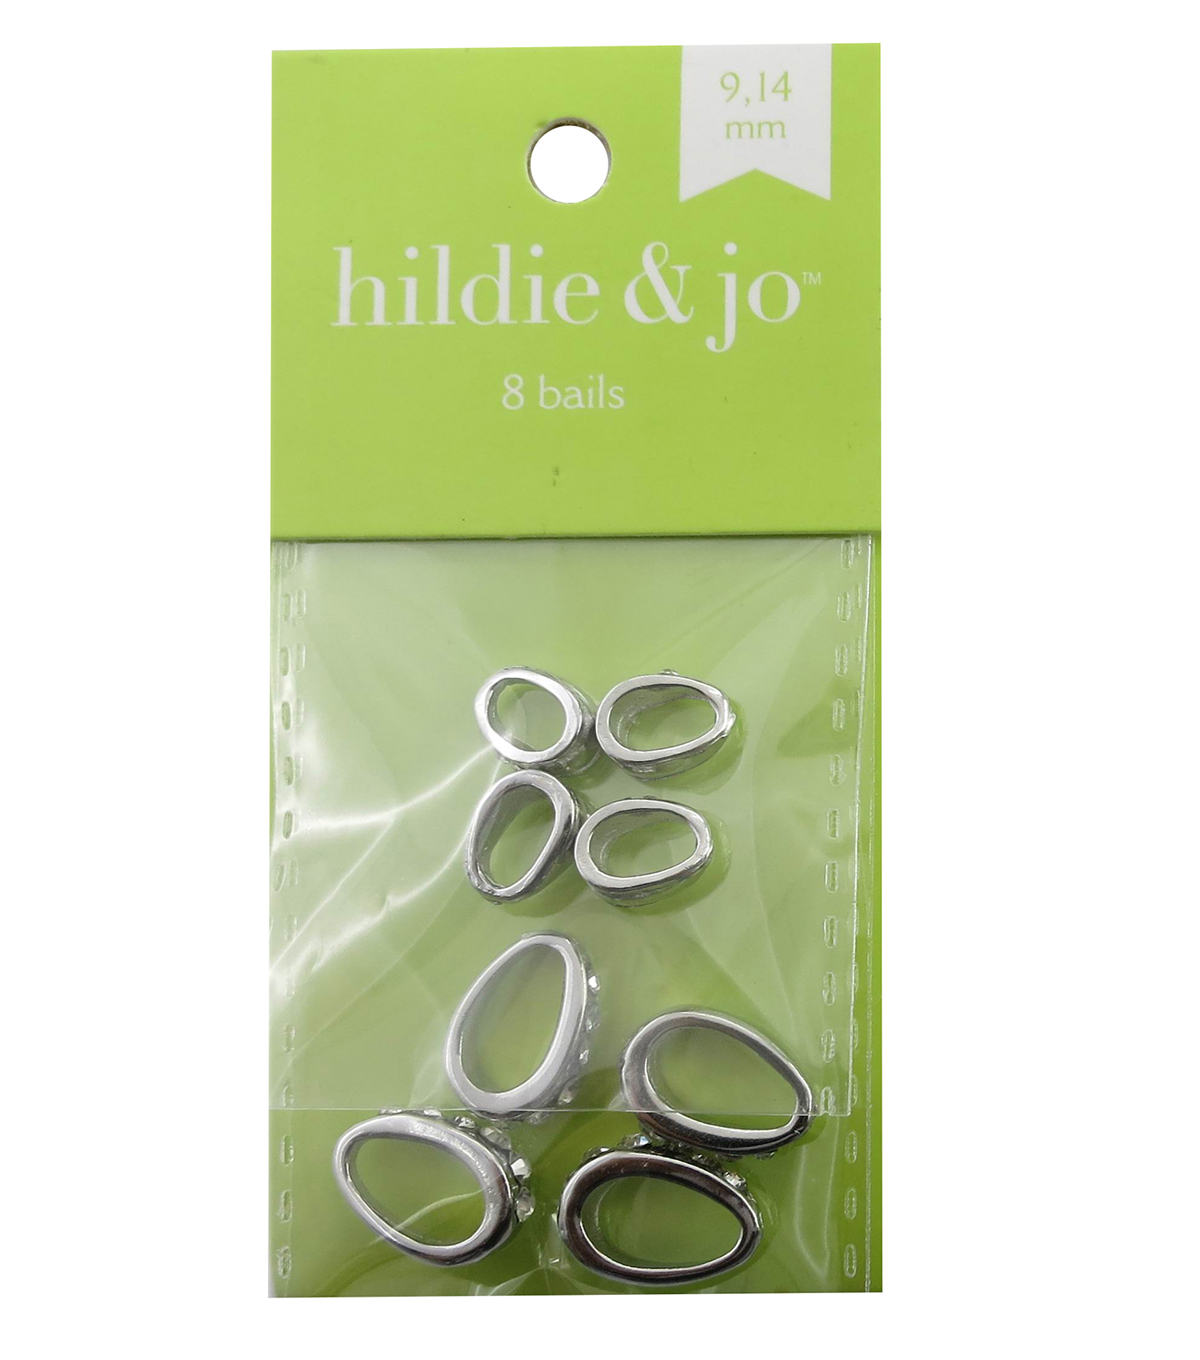 hildie & jo 8 Pack Bails with Clear Crystals-Silver